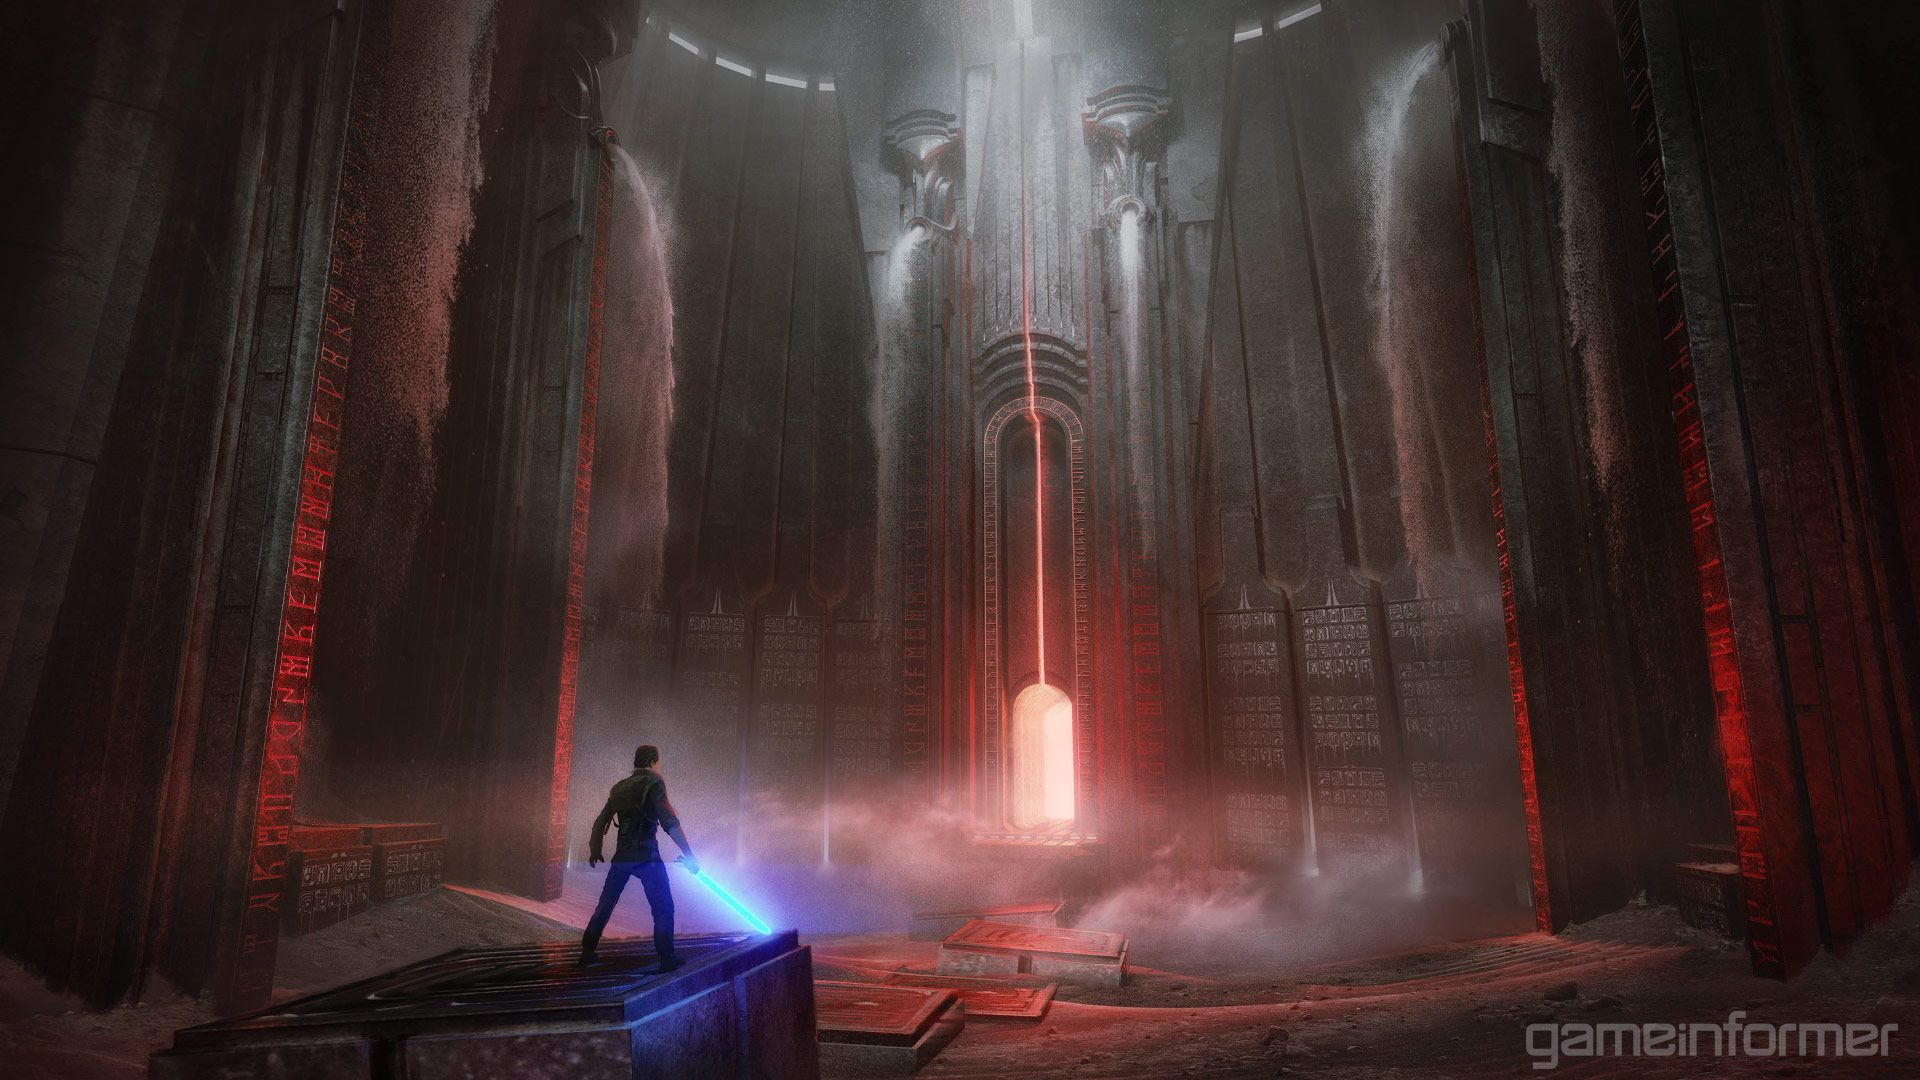 The True Power Of The Force Game Informer Concept Art Star Wars Jedi Sith